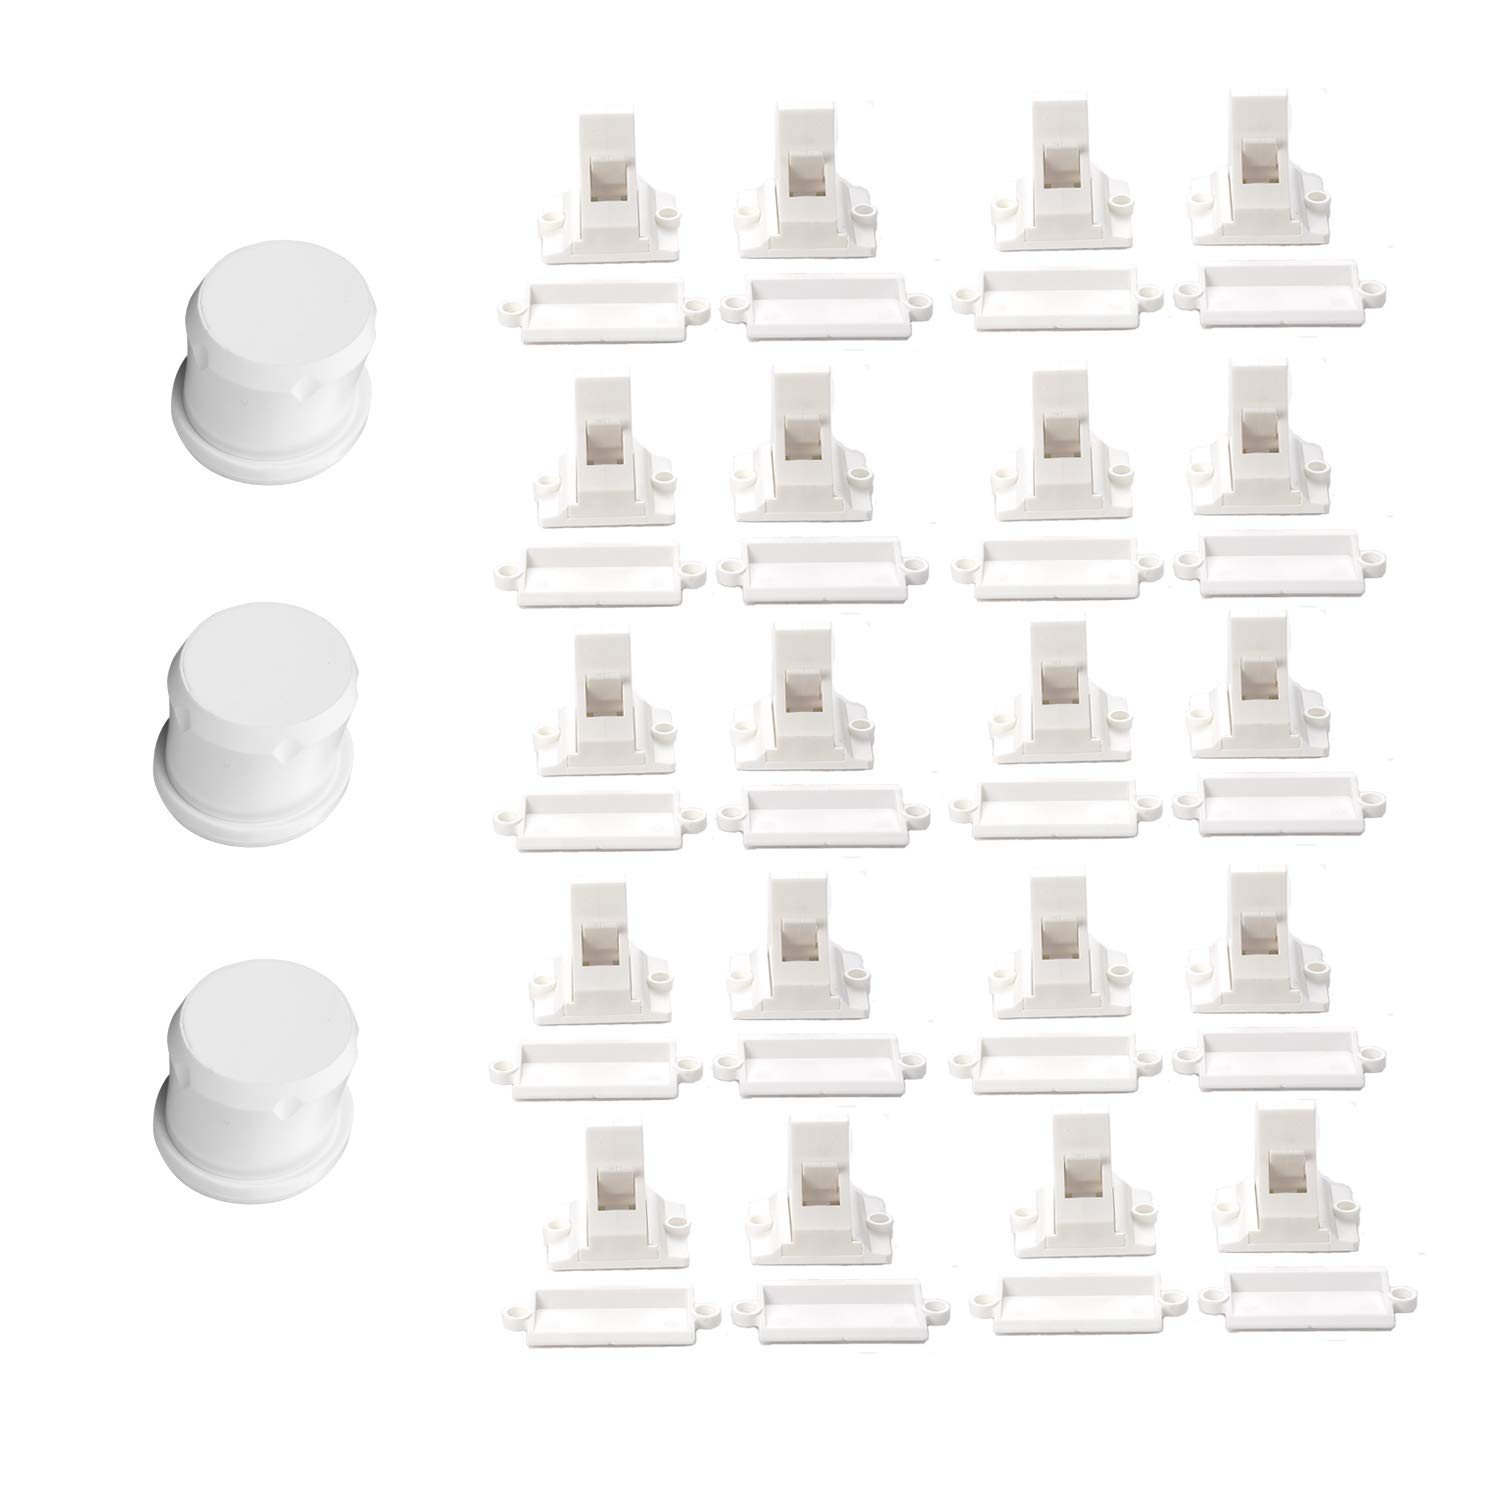 Magnetic Cabinet Locks Baby Proofing - Vkania 20 Pack Children Proof Cupboard Drawers Latches - 3M Adhesive Easy Installation